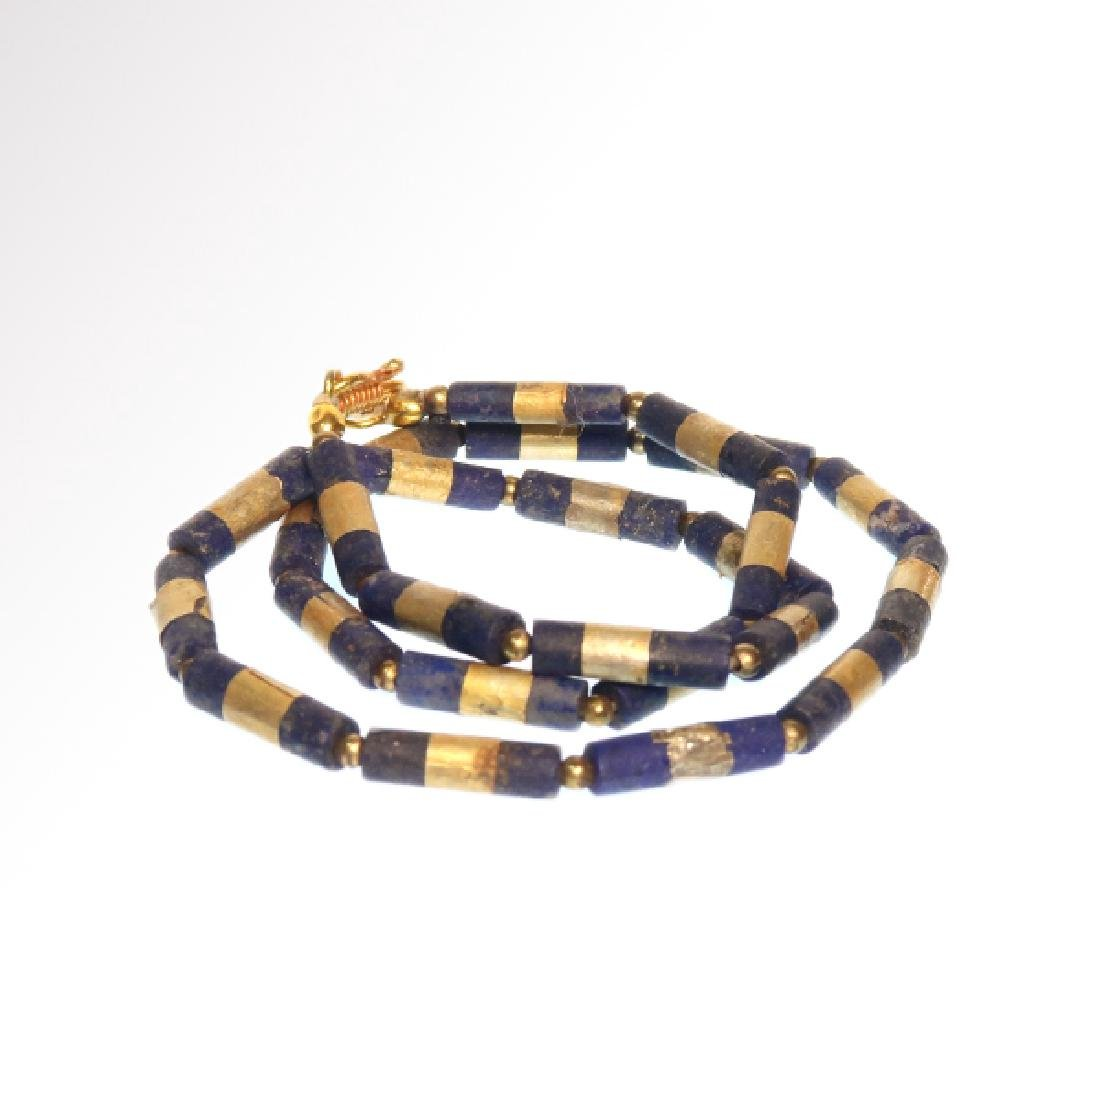 Egyptian Lapis and Gold Necklace, c. 300-200 B.C. - 2